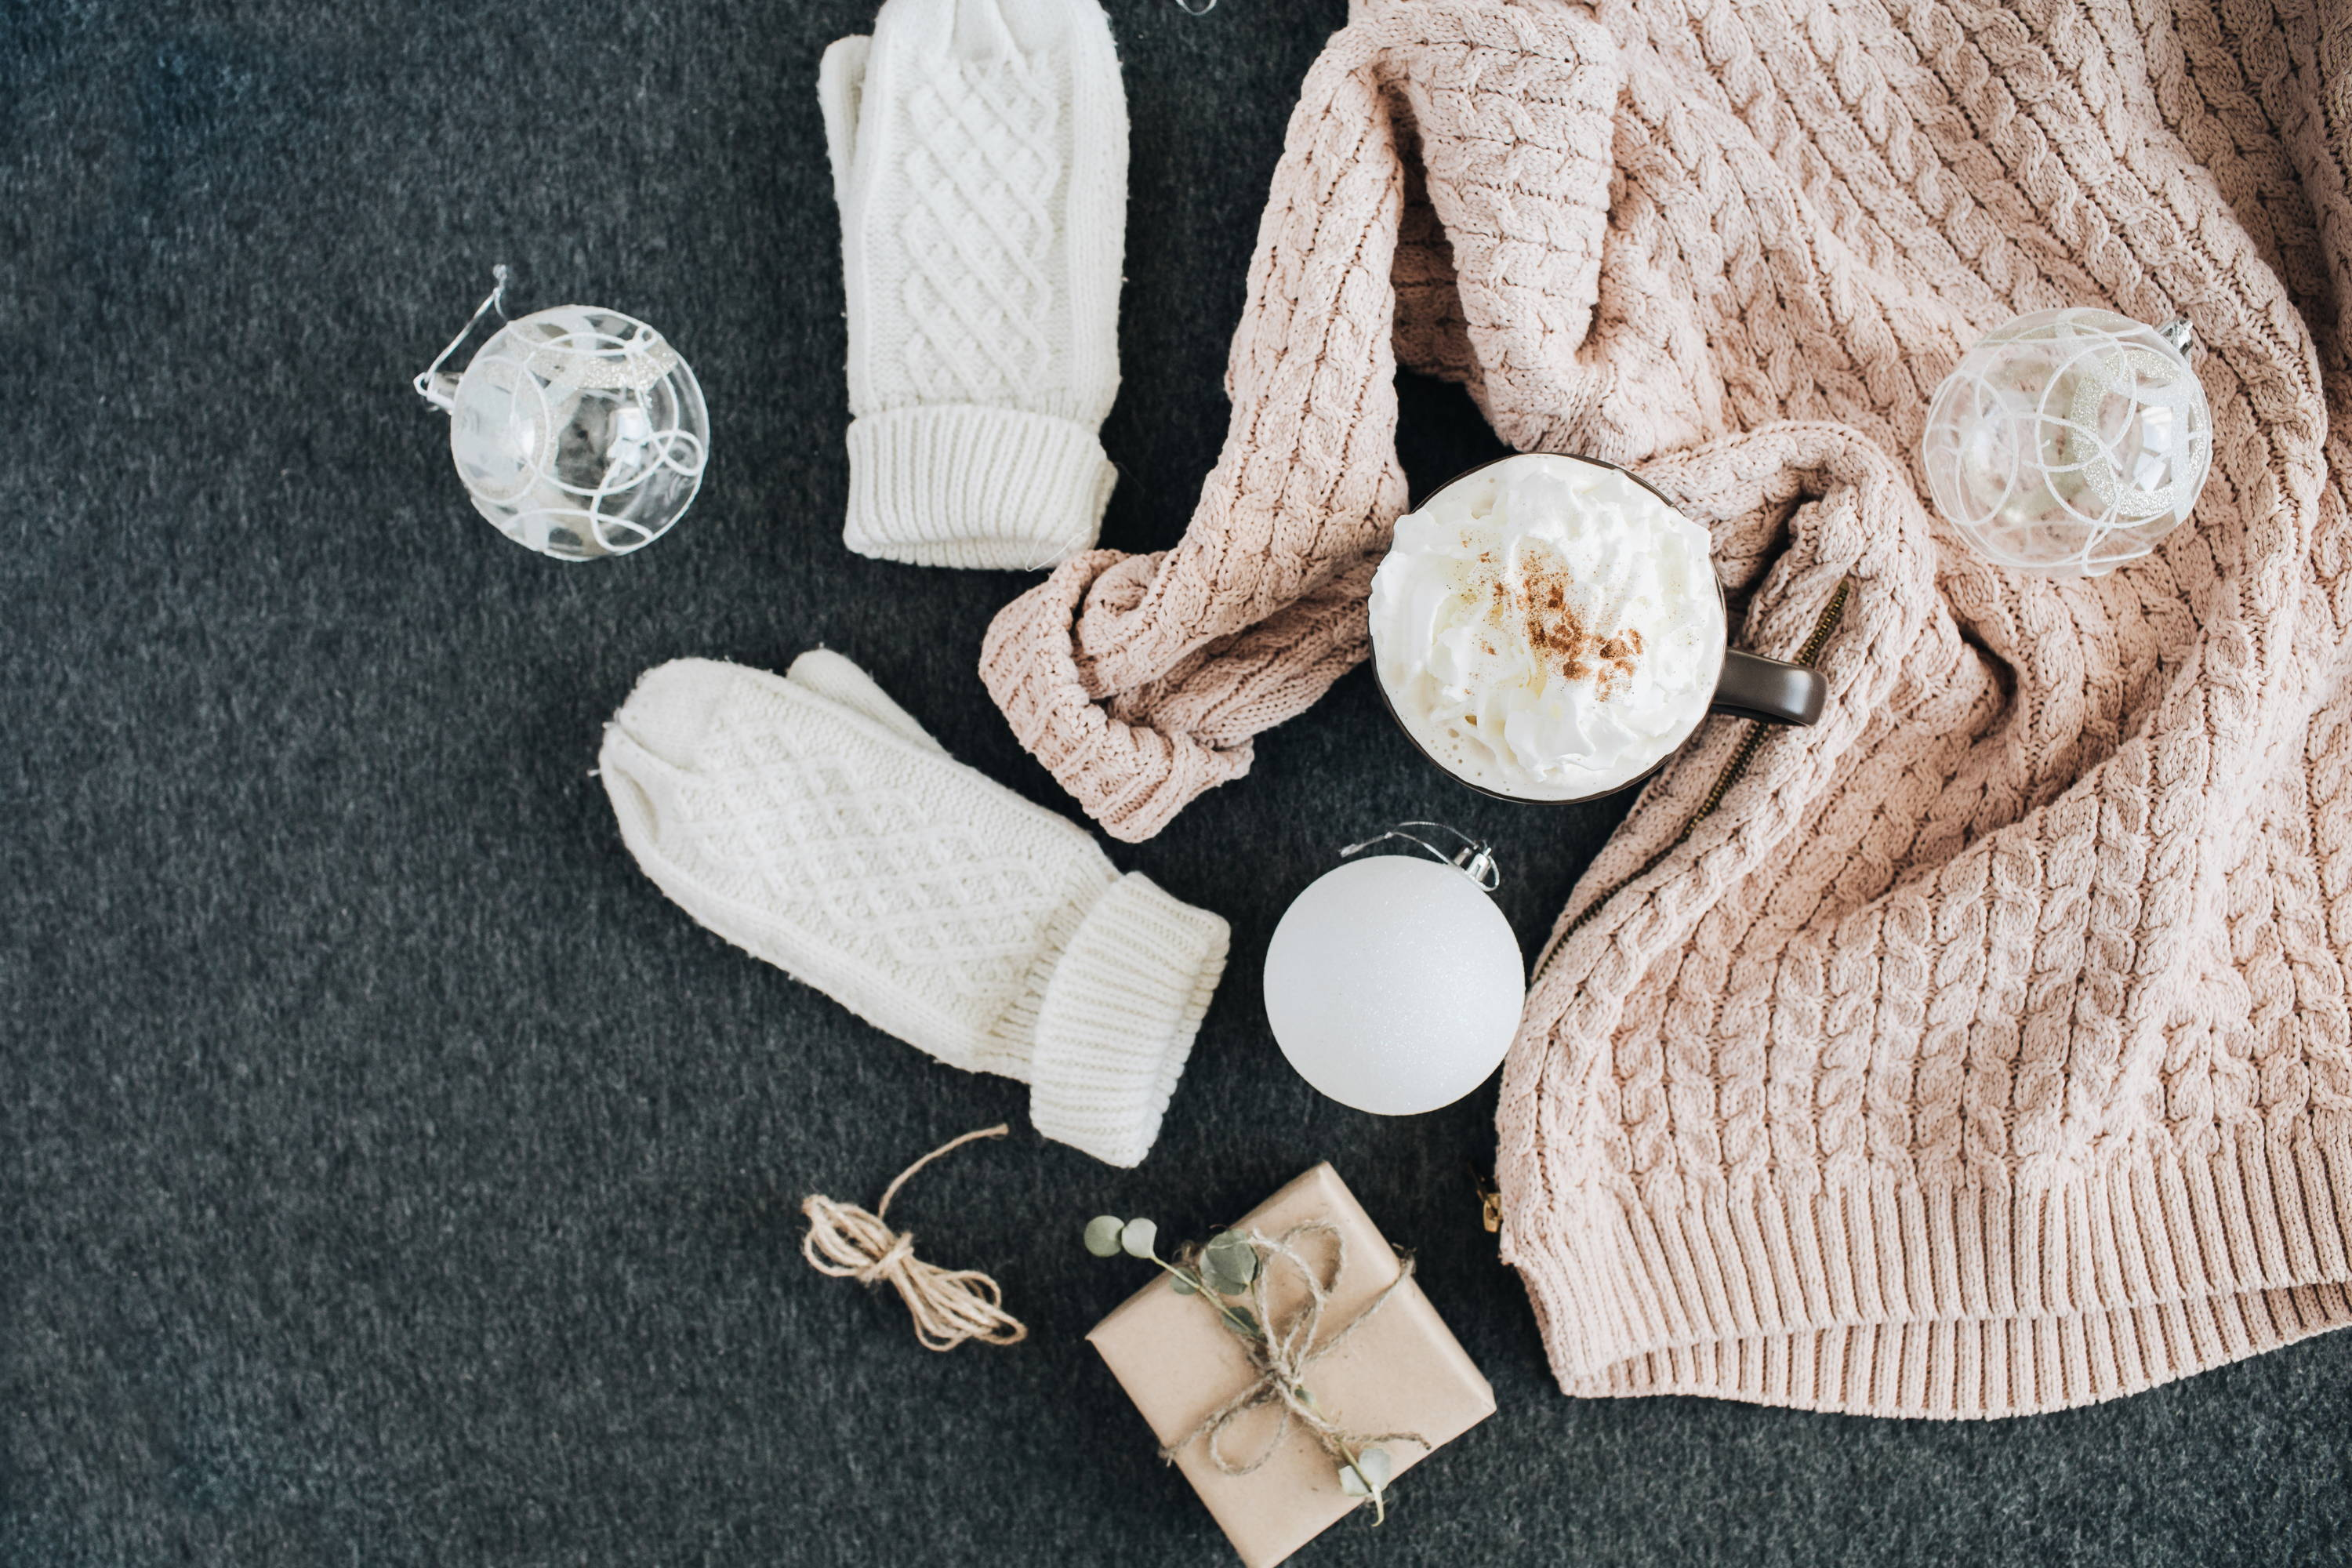 sweater, mittens, gifts on a table